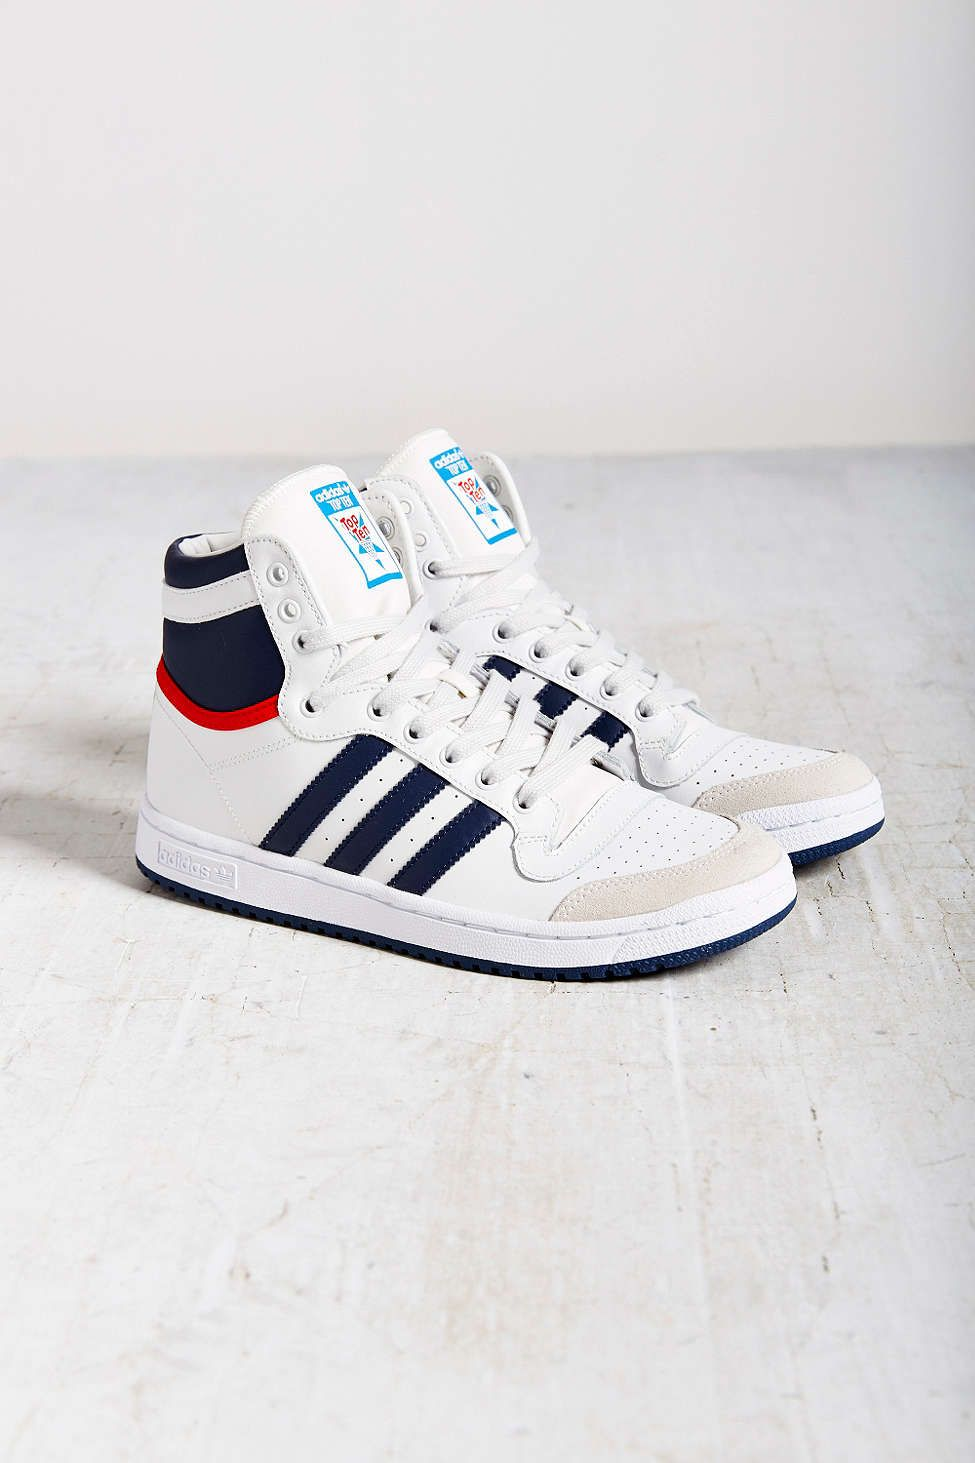 adidas Originals Top Ten Hi Retro Sneaker | Adidas originals